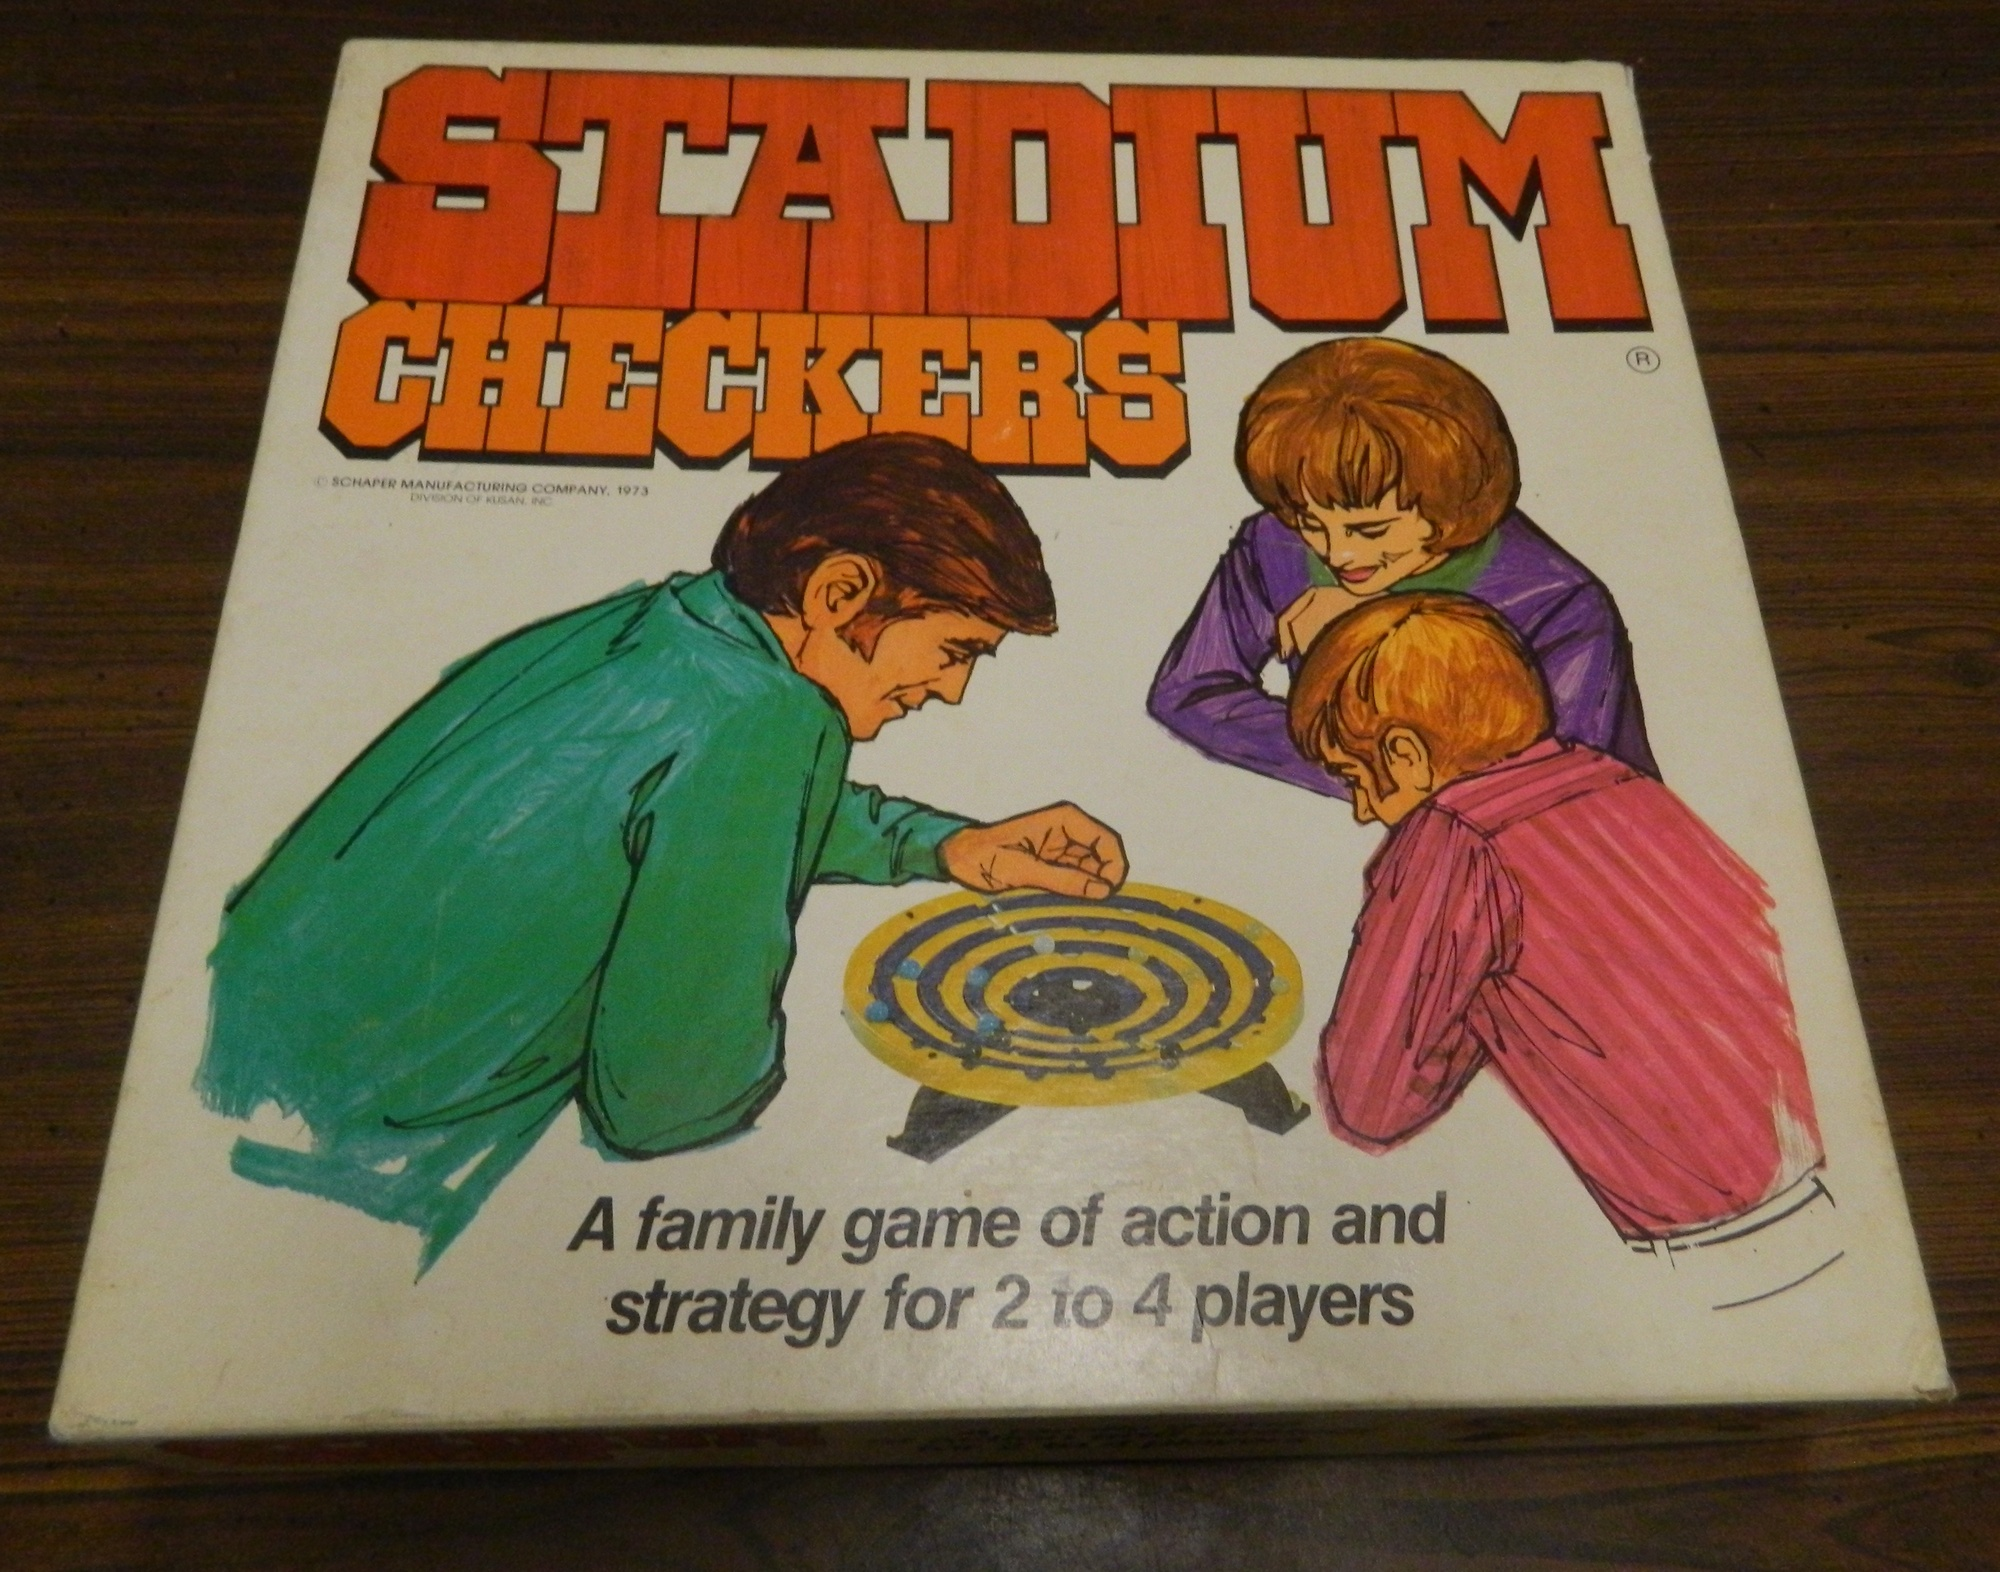 Box for Stadium Checkers